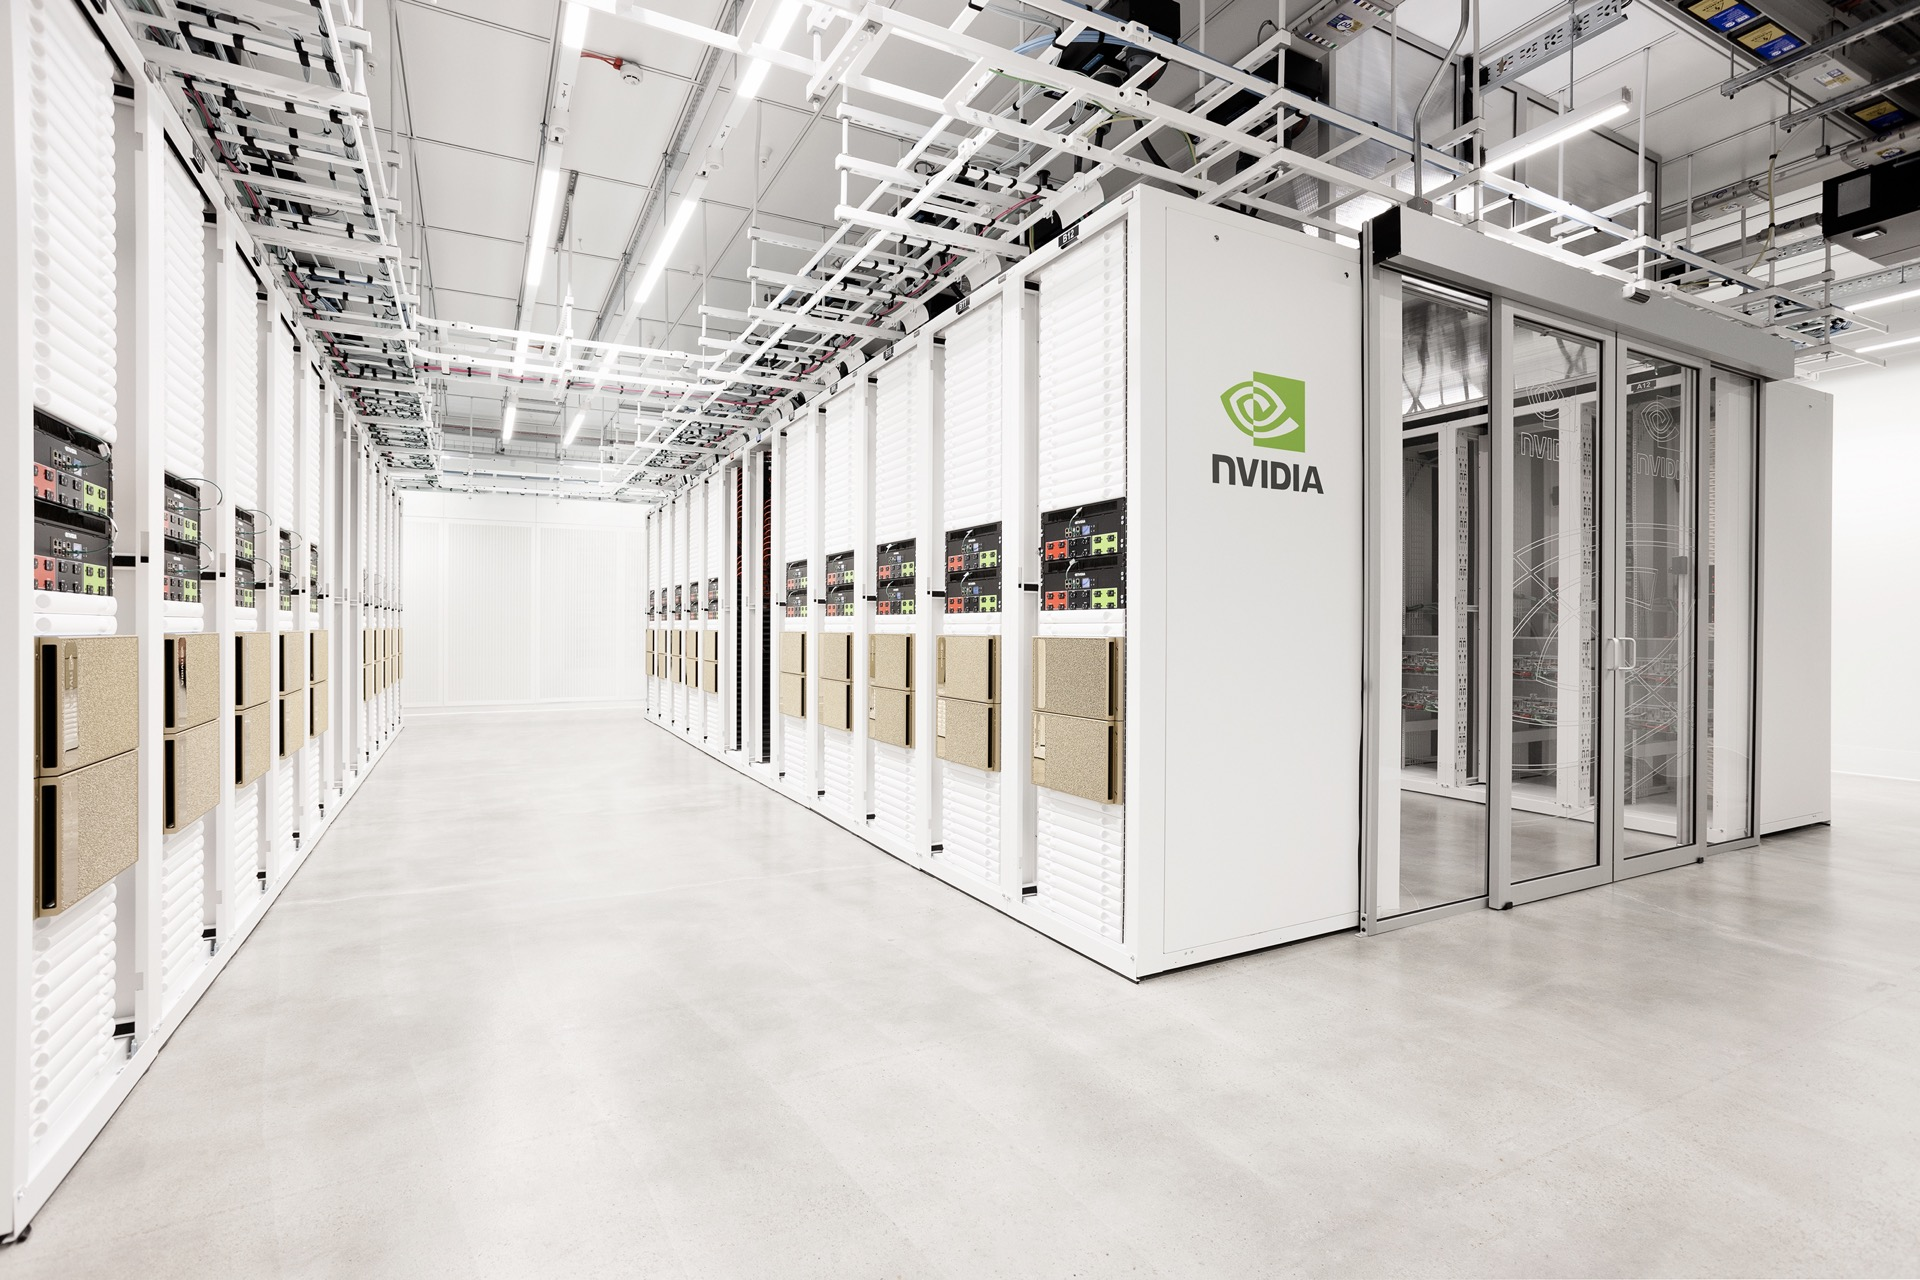 The Cambridge-1 supercomputer may be live, but is the Nvidia tech super for pharma?